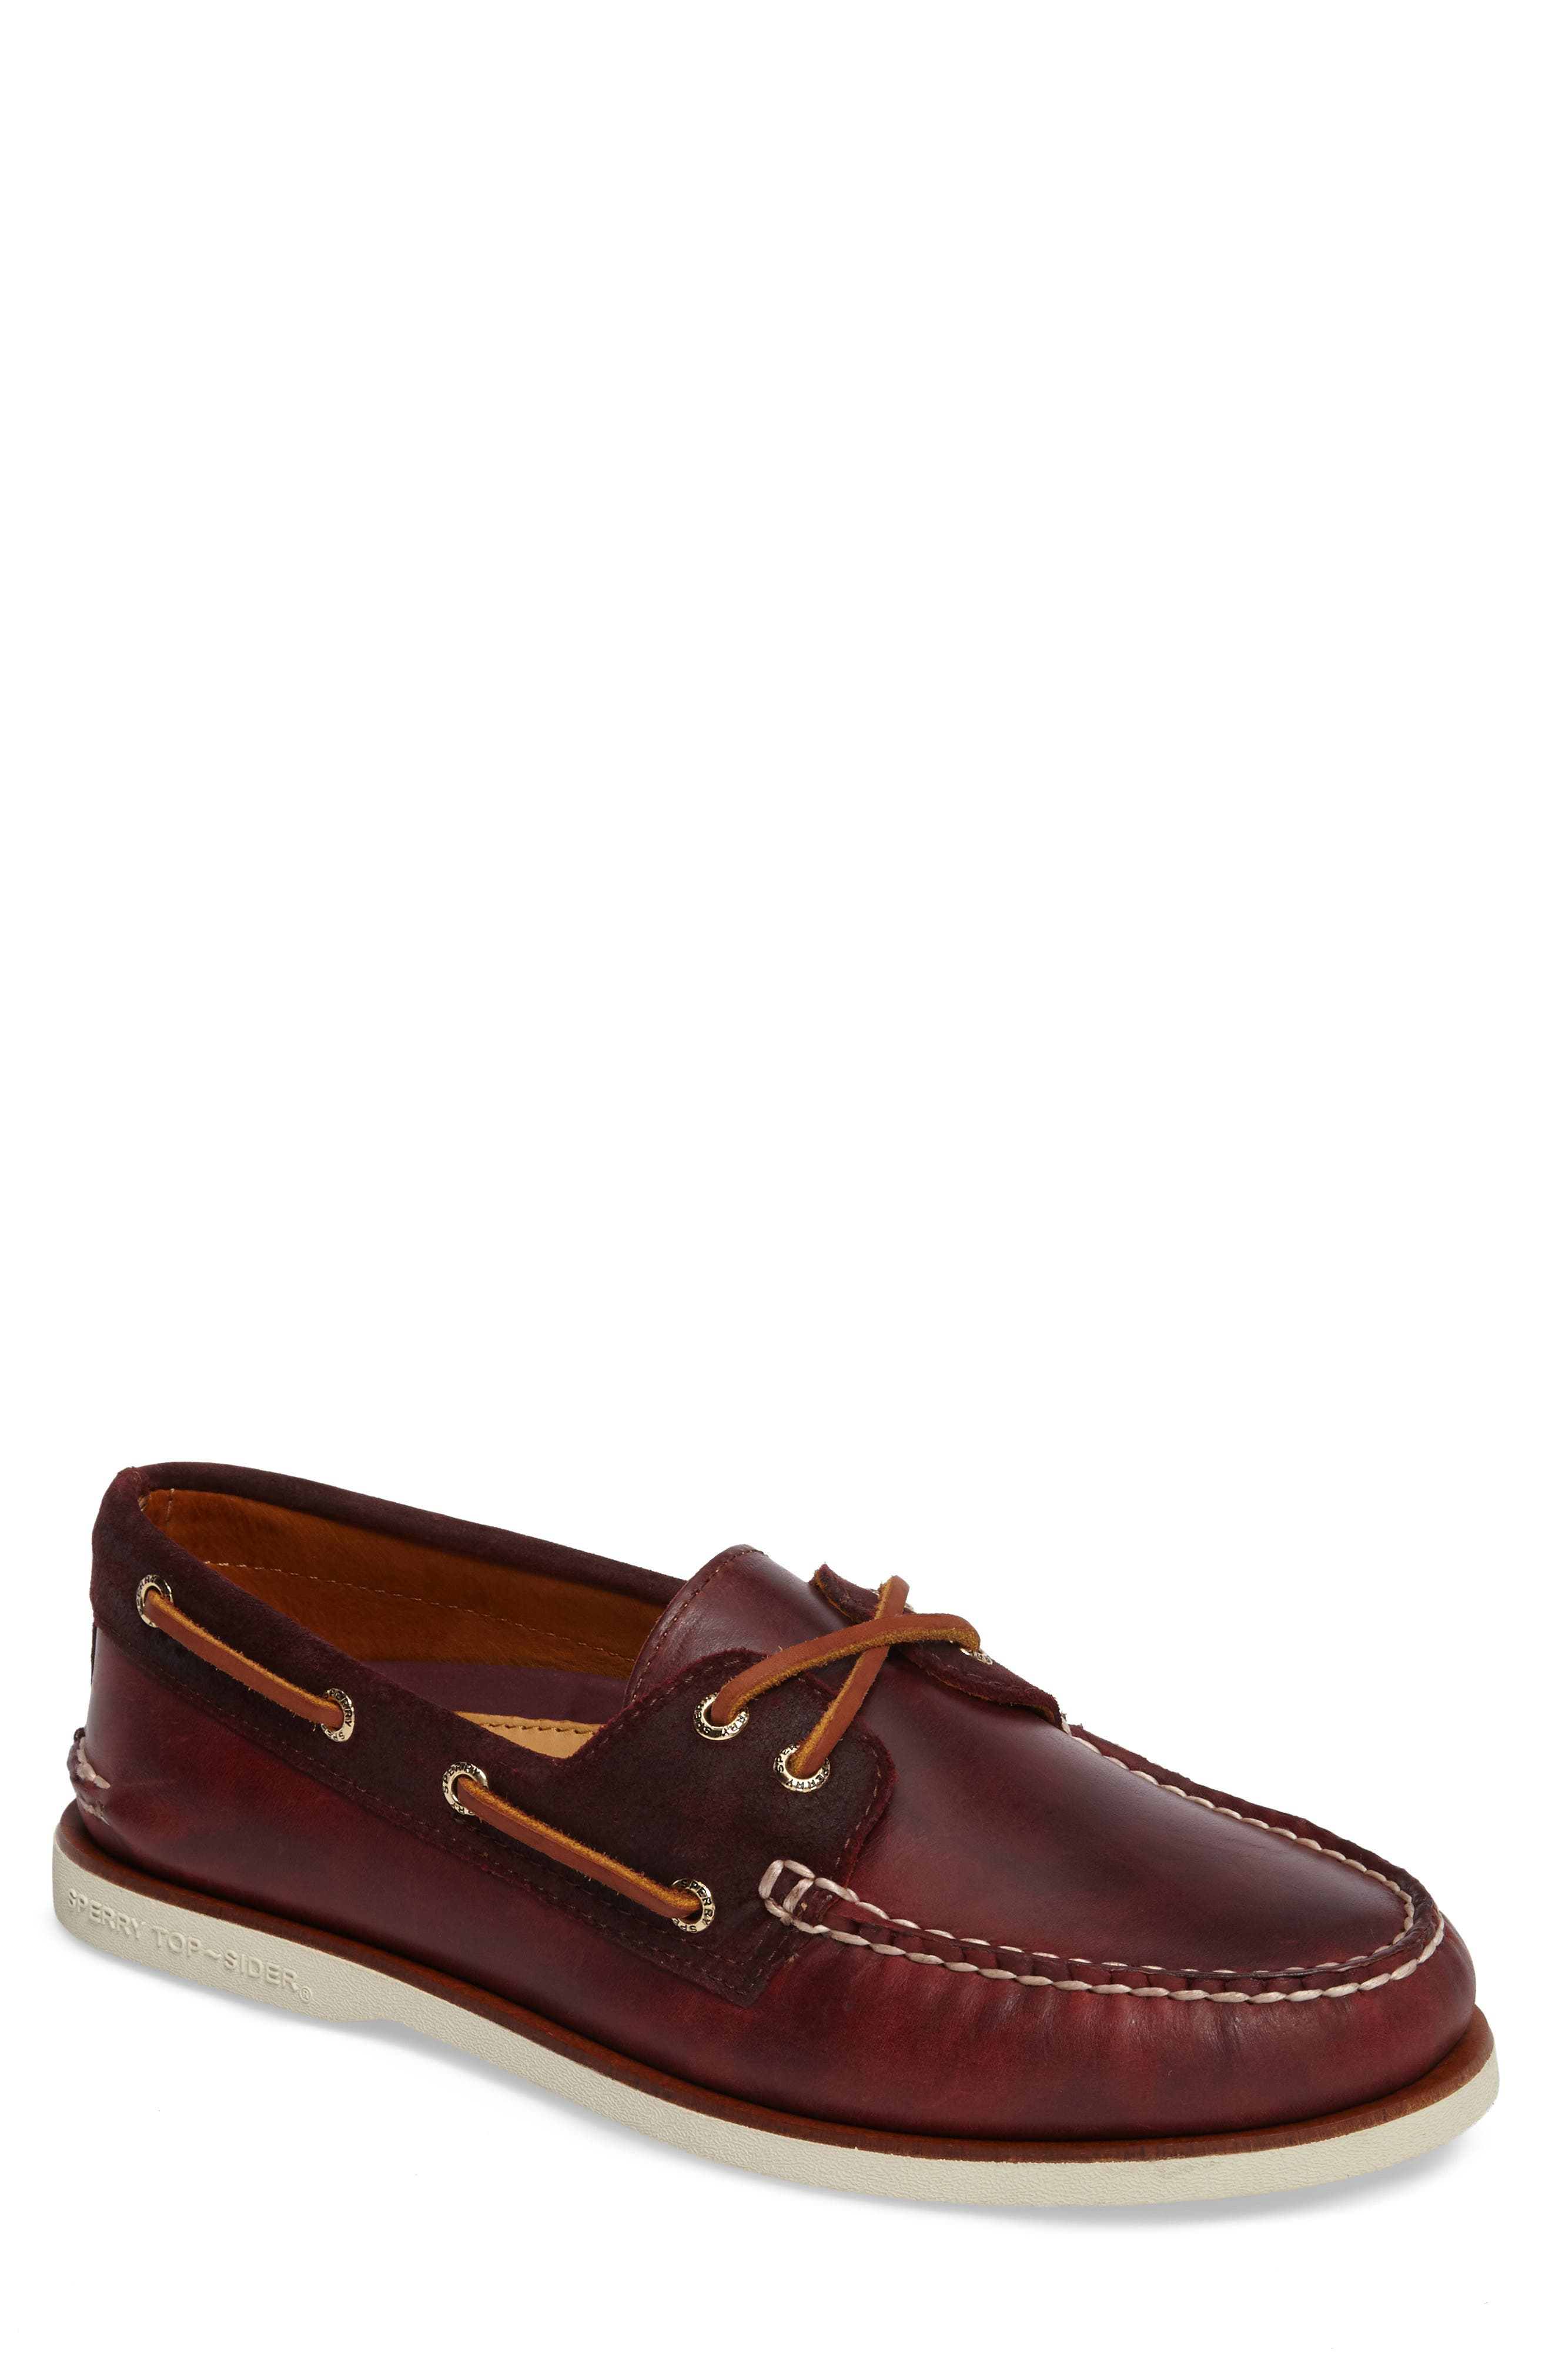 Main Image - Sperry Gold Cyclone Boat Shoe (Men)